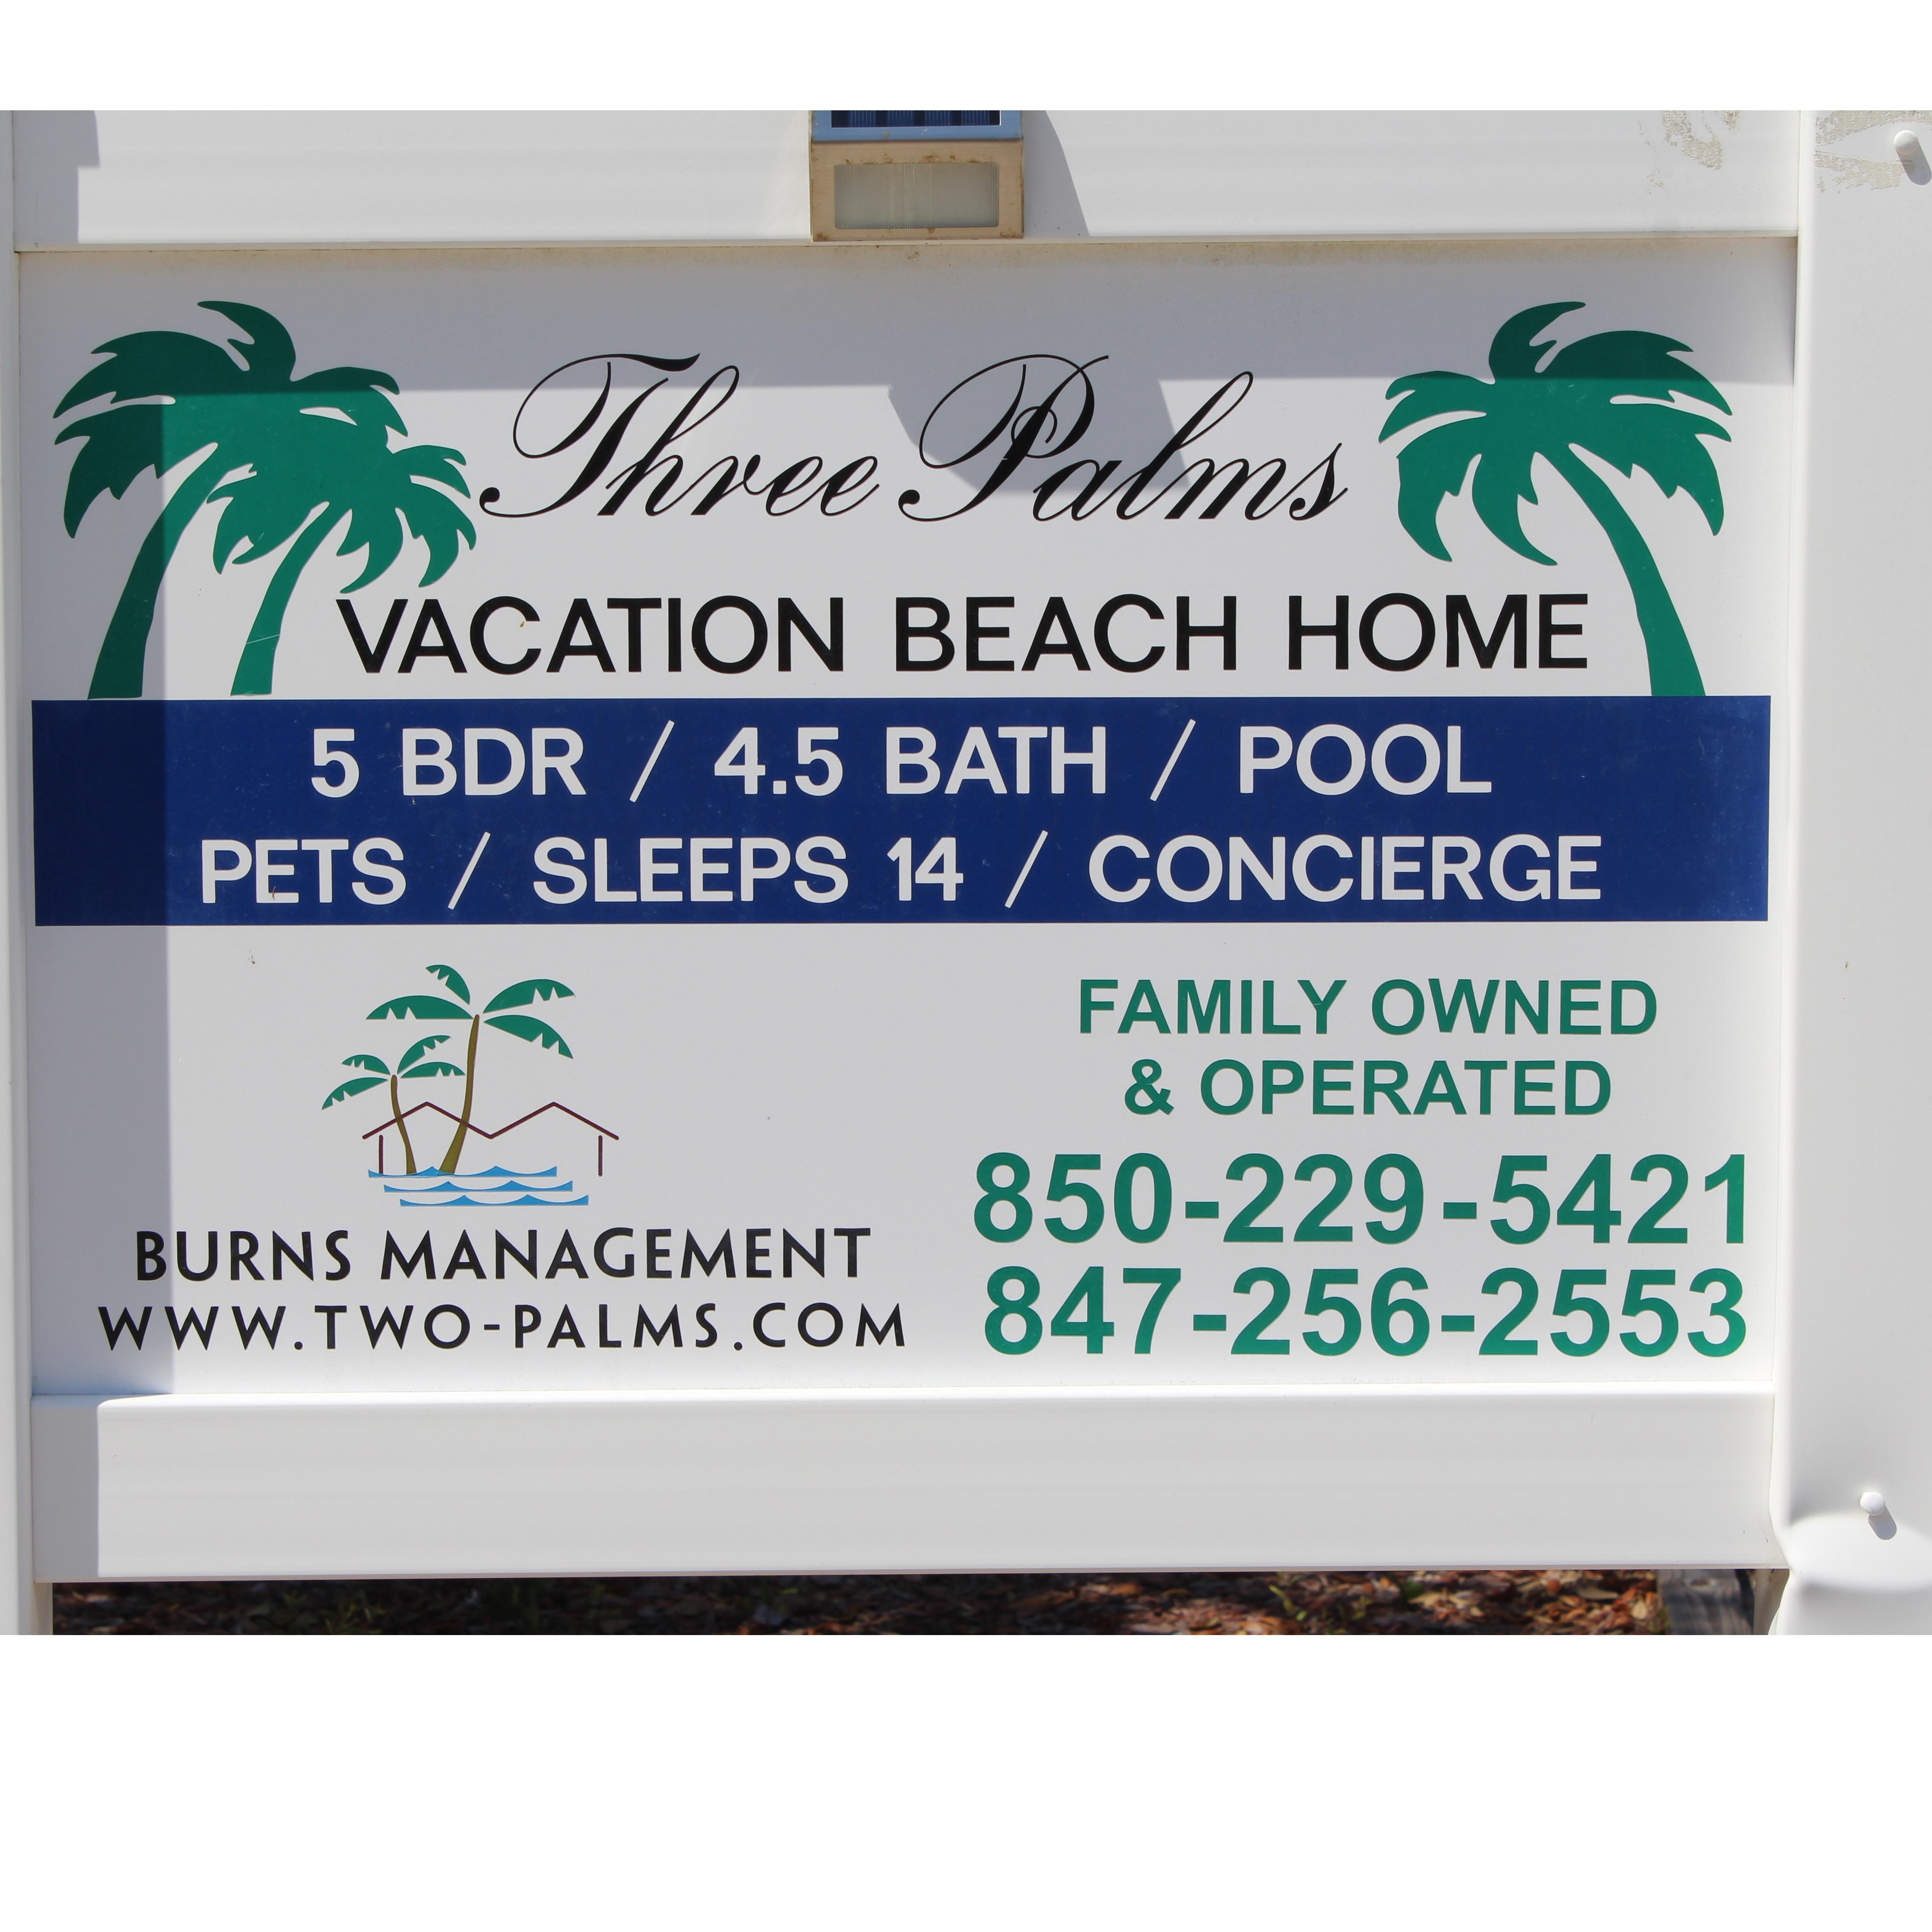 image of Burns Management Beach Vacation Rentals